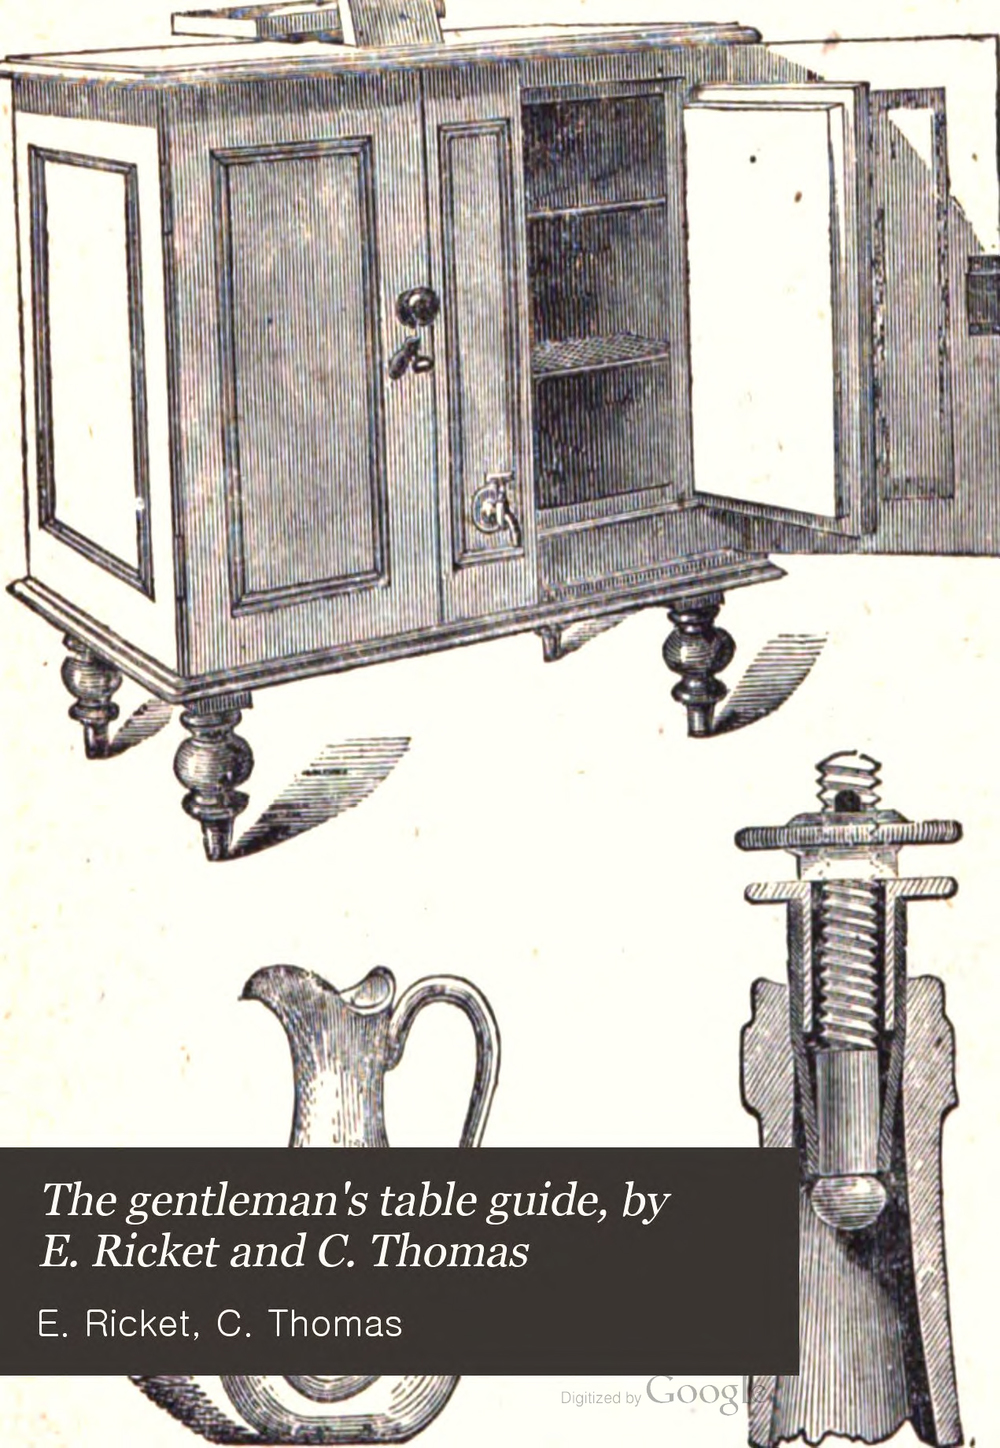 The_gentleman_s_table_guide_by_E_Ricket-2.jpg